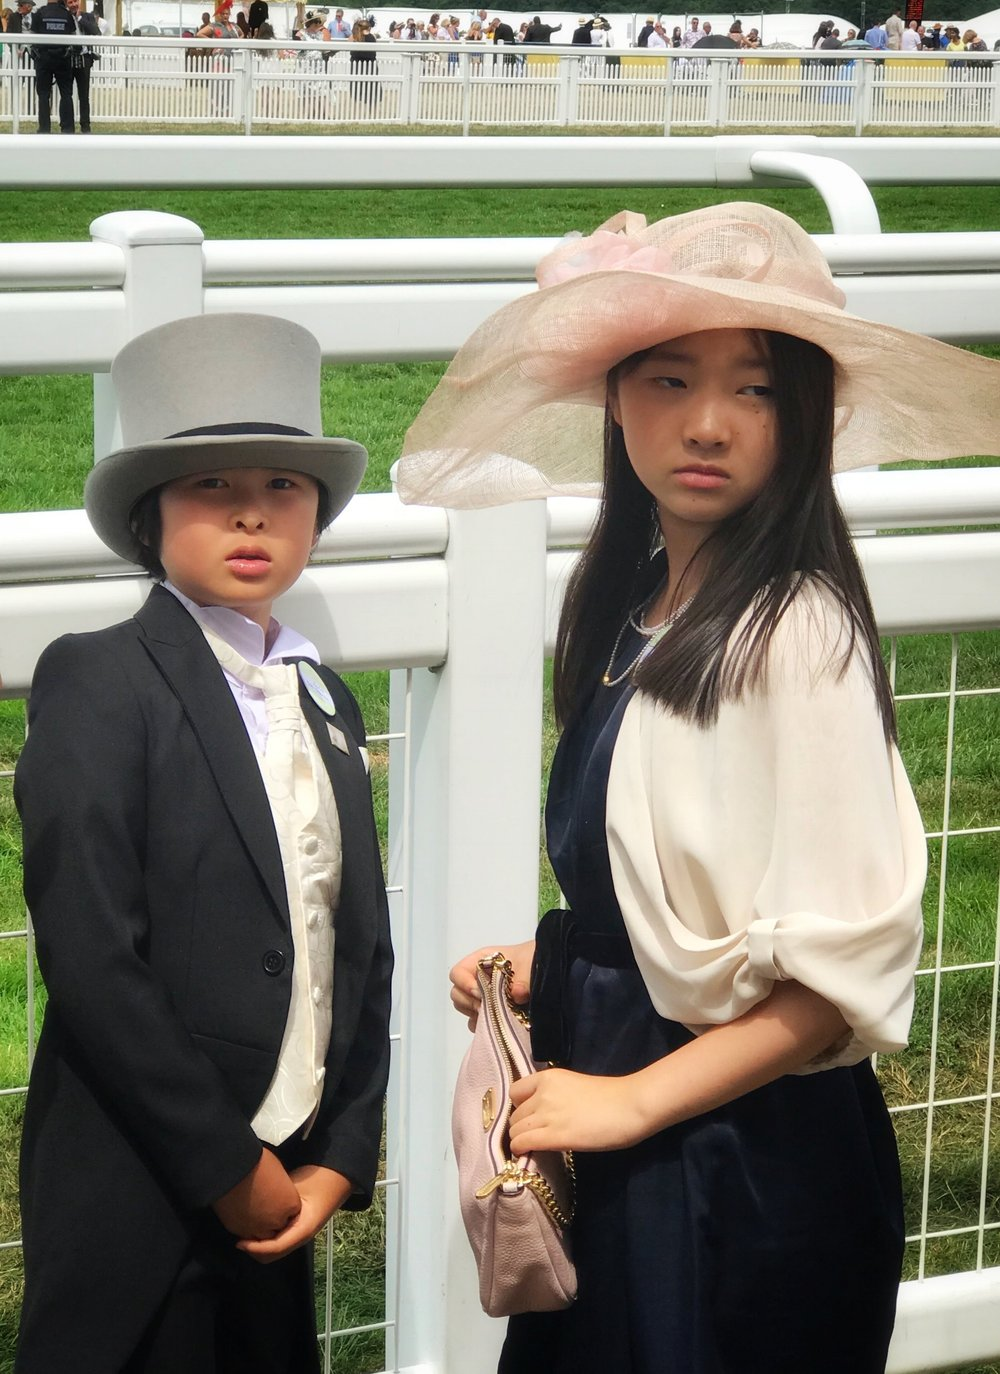 The children of Ascot